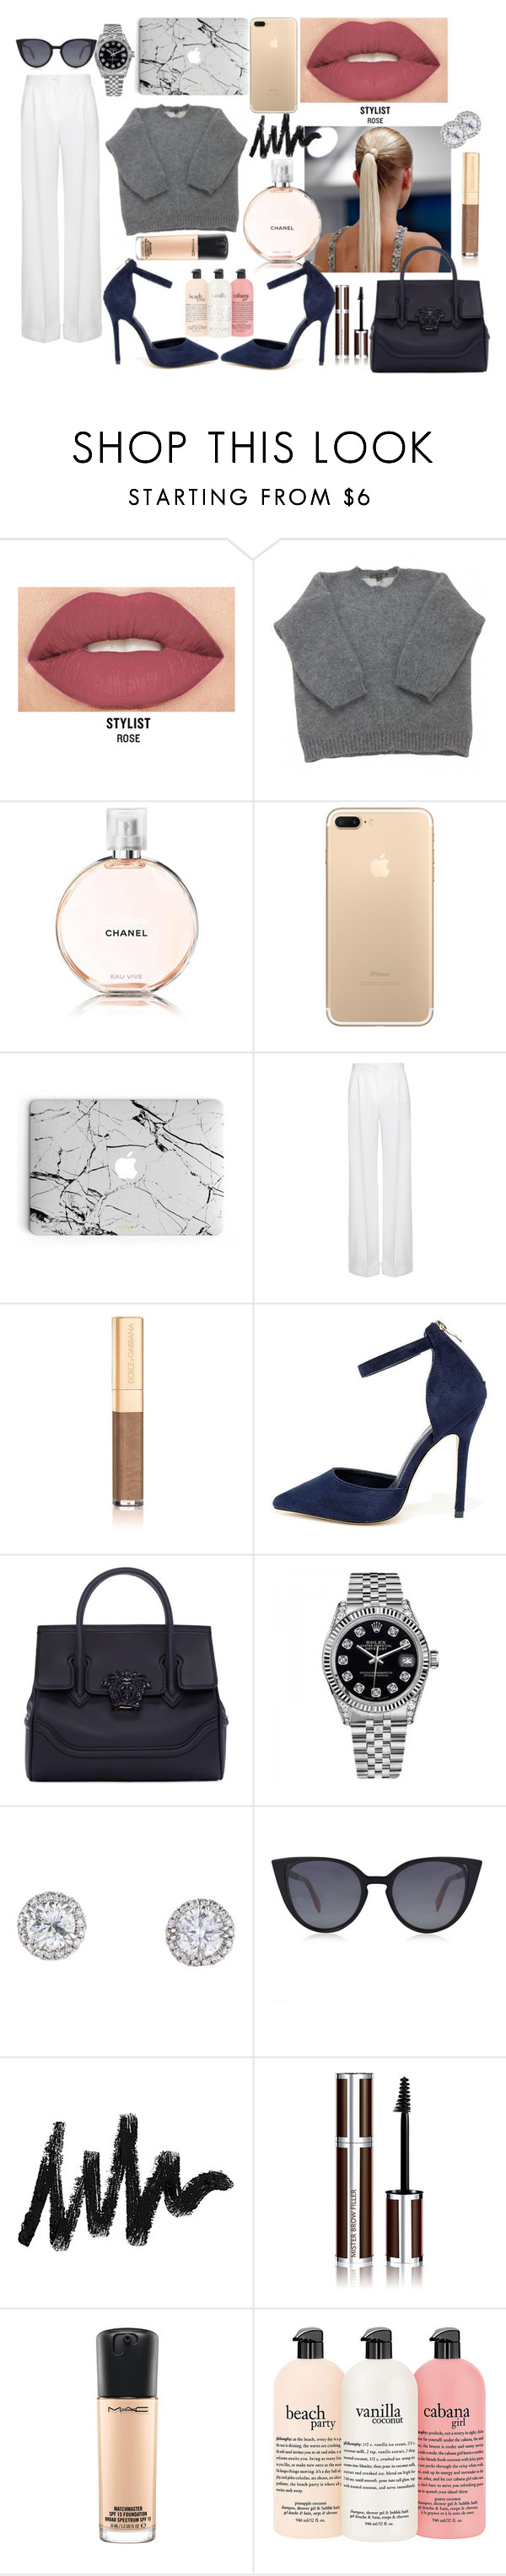 """The Posh & Powerful."" by enu-india on Polyvore featuring Smashbox, Louis Vuitton, Chanel, Dolce&Gabbana, Betani, Versace, Rolex, Fendi, Givenchy and MAC Cosmetics"